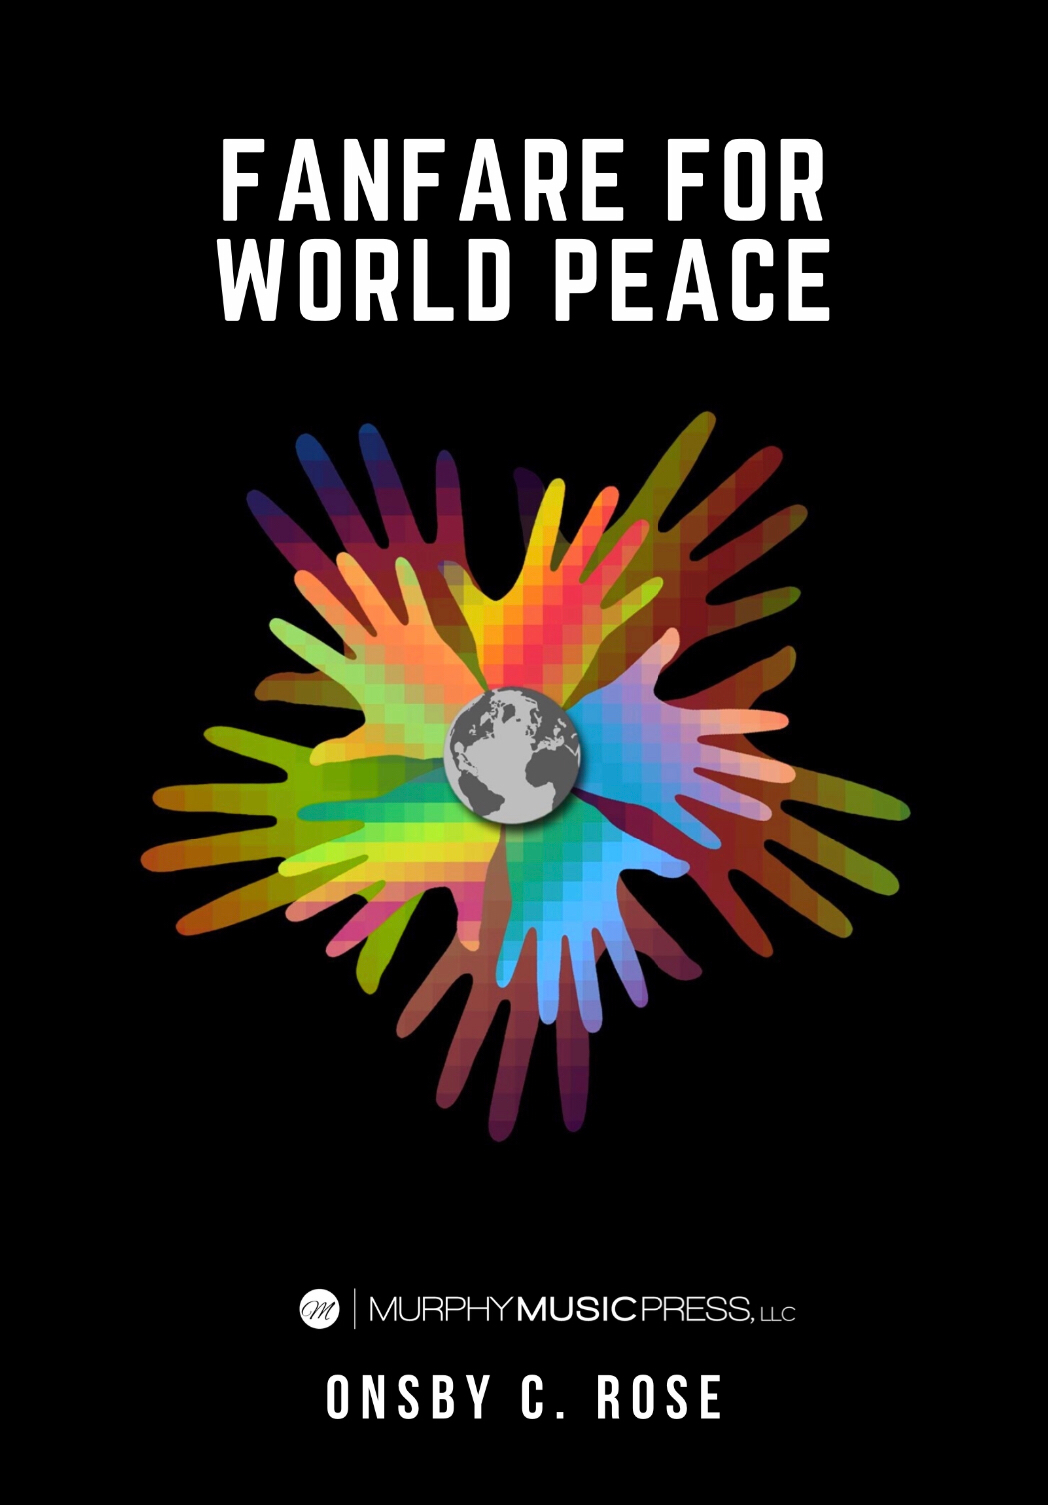 Fanfare For World Peace by Onsby C. Rose